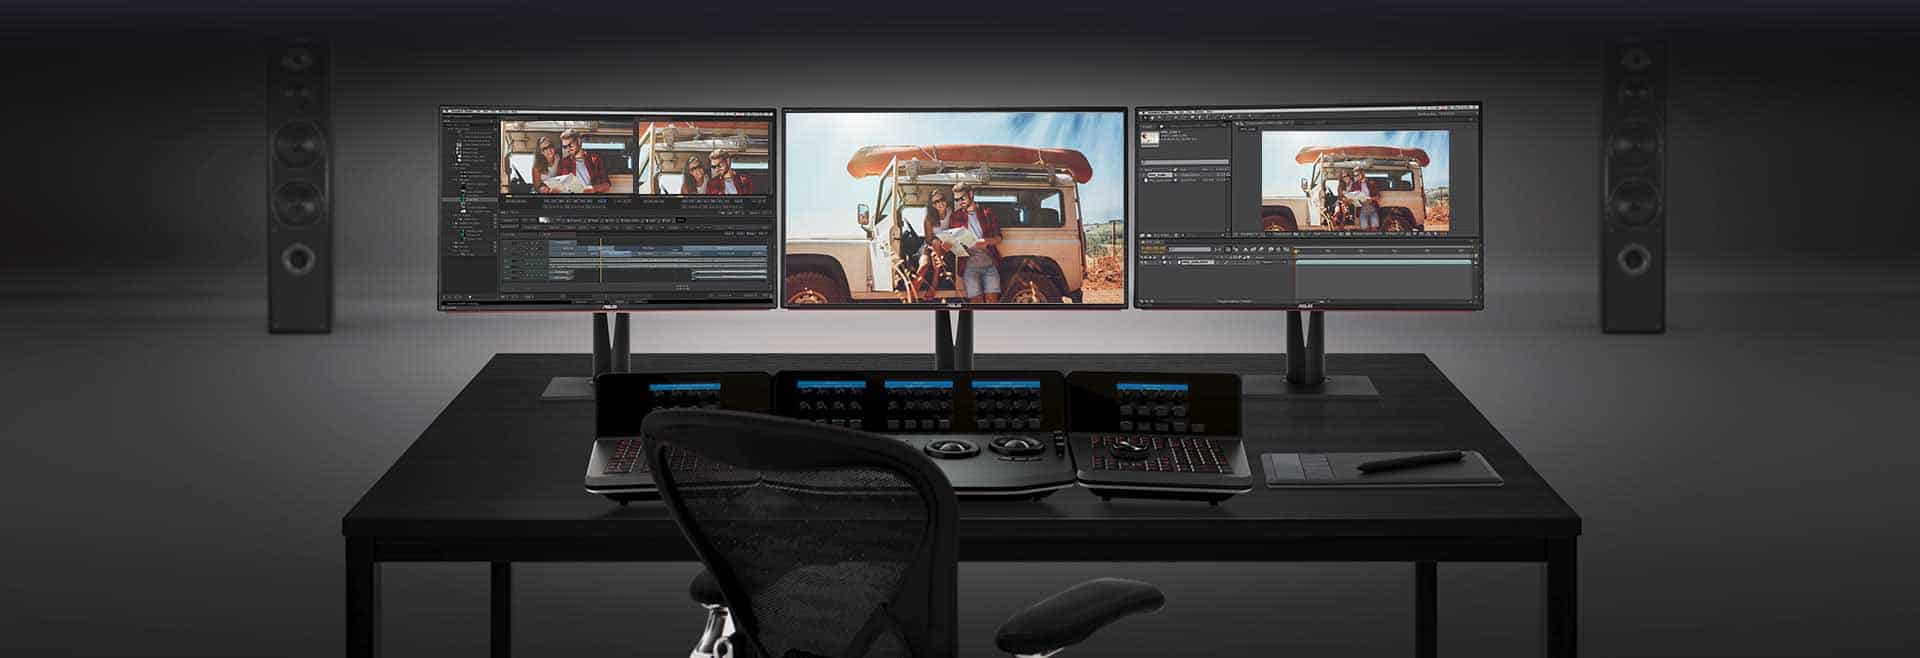 Best Monitors For Photo Editing and Video Editing 2019 – Buyer's Guide and Monitor Reviews